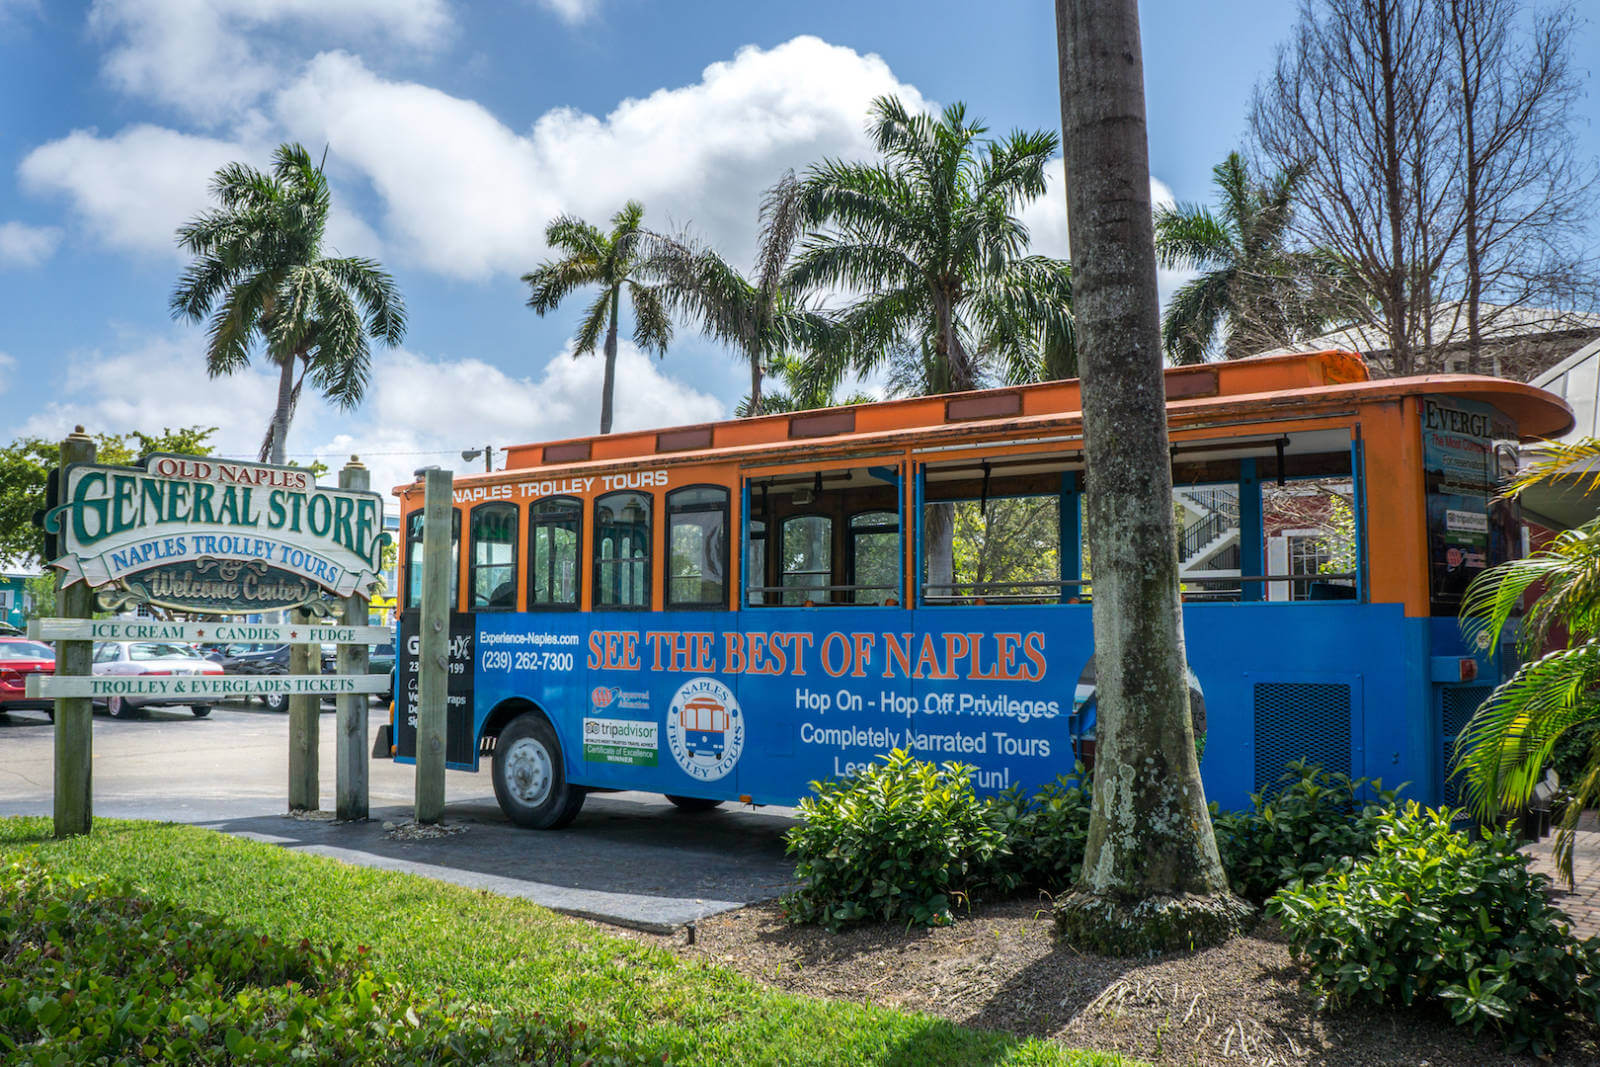 A Naples Trolley Tour allows you to explore Naples despite the rain! The narrated tour stops at 17 places across town and allows you to hop-on-hop-off at any point. You can also sit back and enjoy the ride which takes approximately 2 hours to complete. Photo by Jennifer Brinkman | MustDo.com